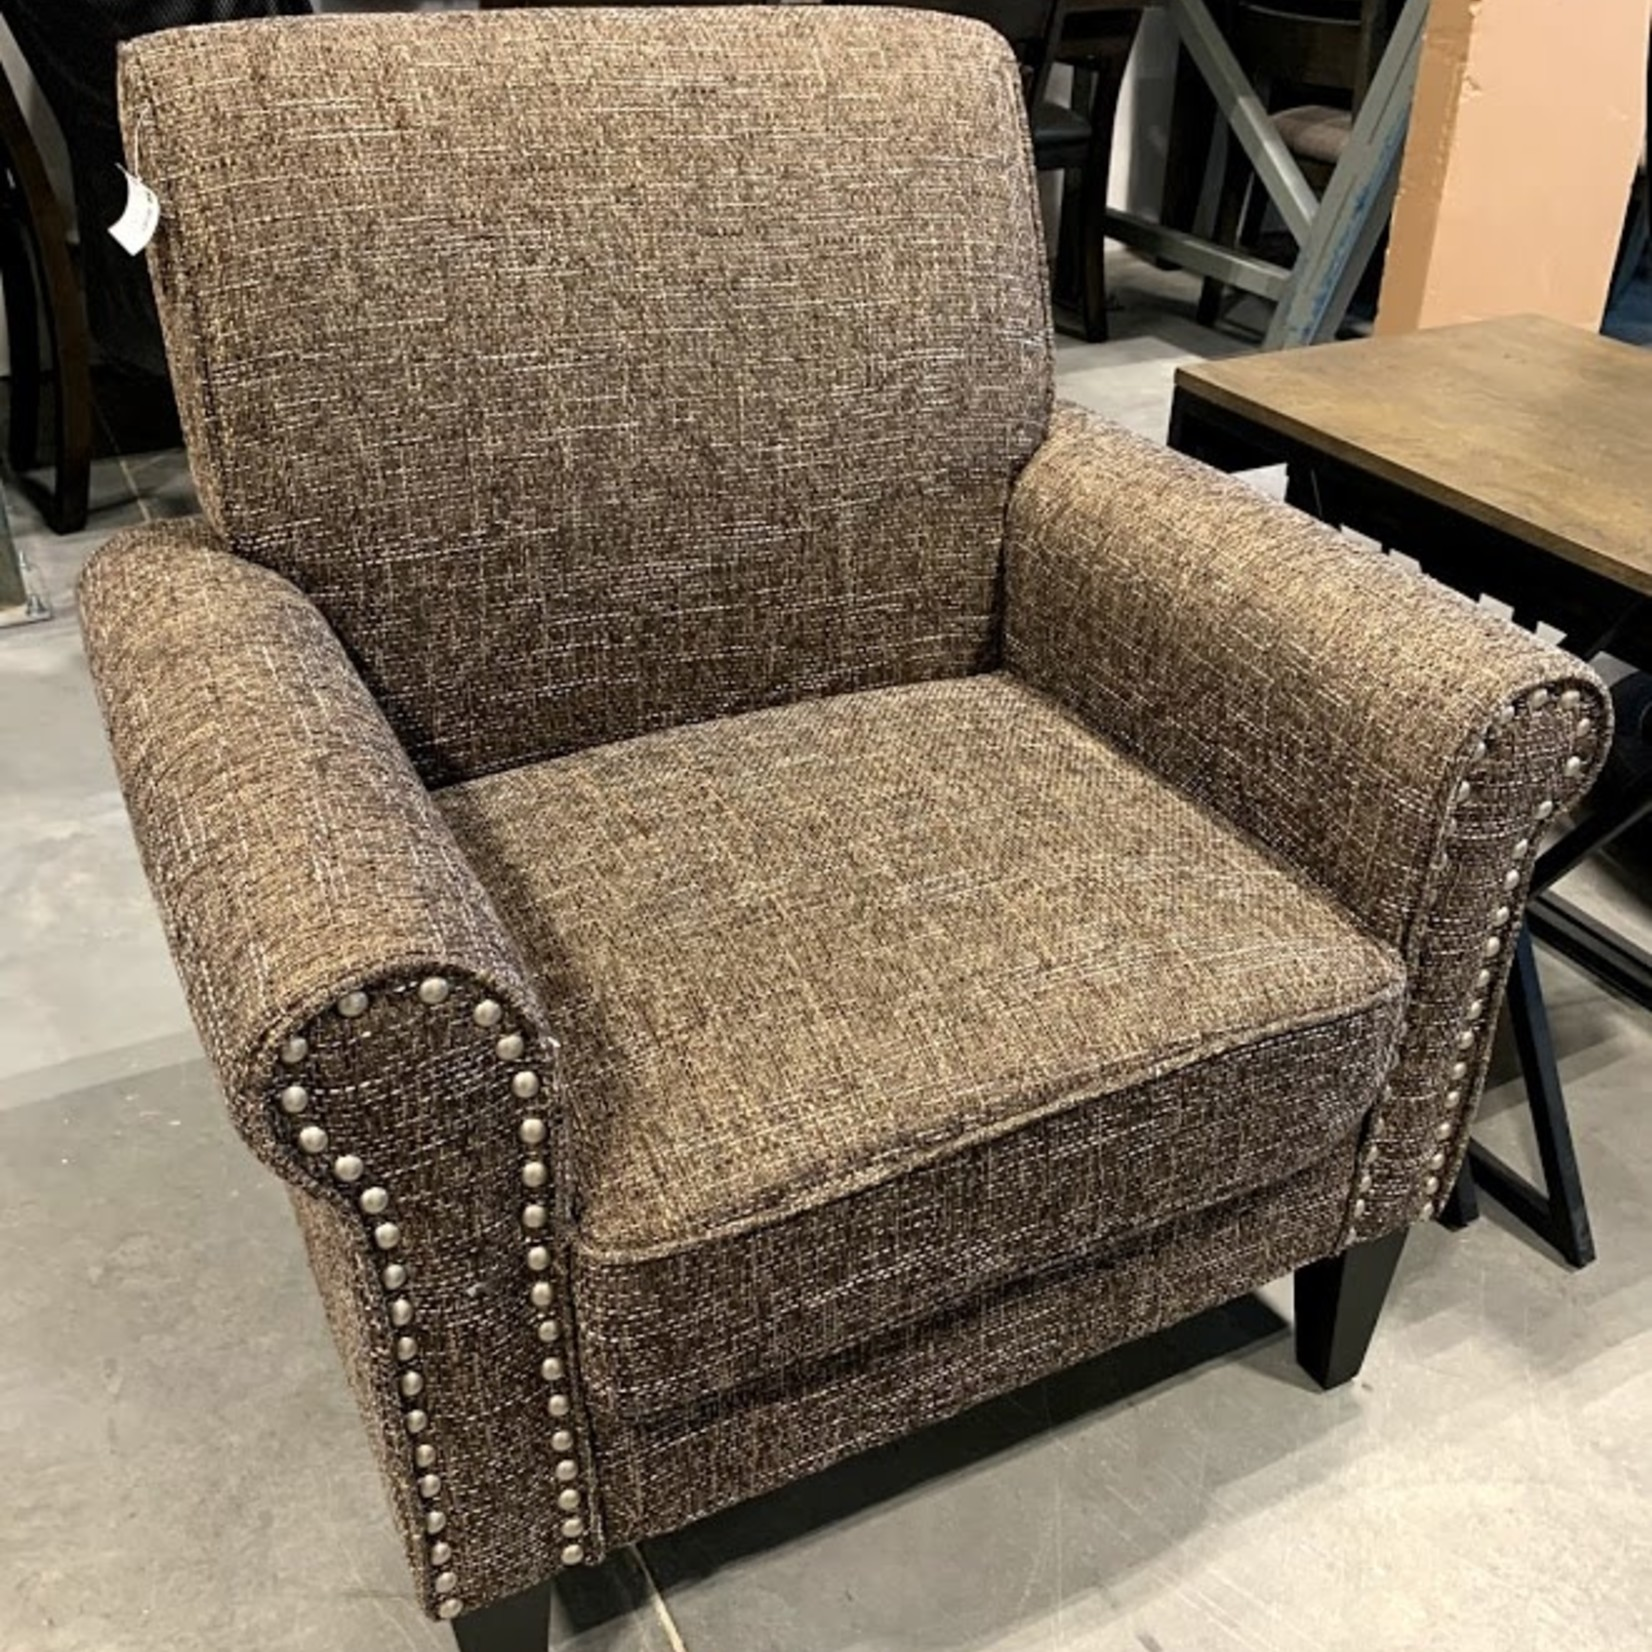 Accent Chair - Brown woven pattern